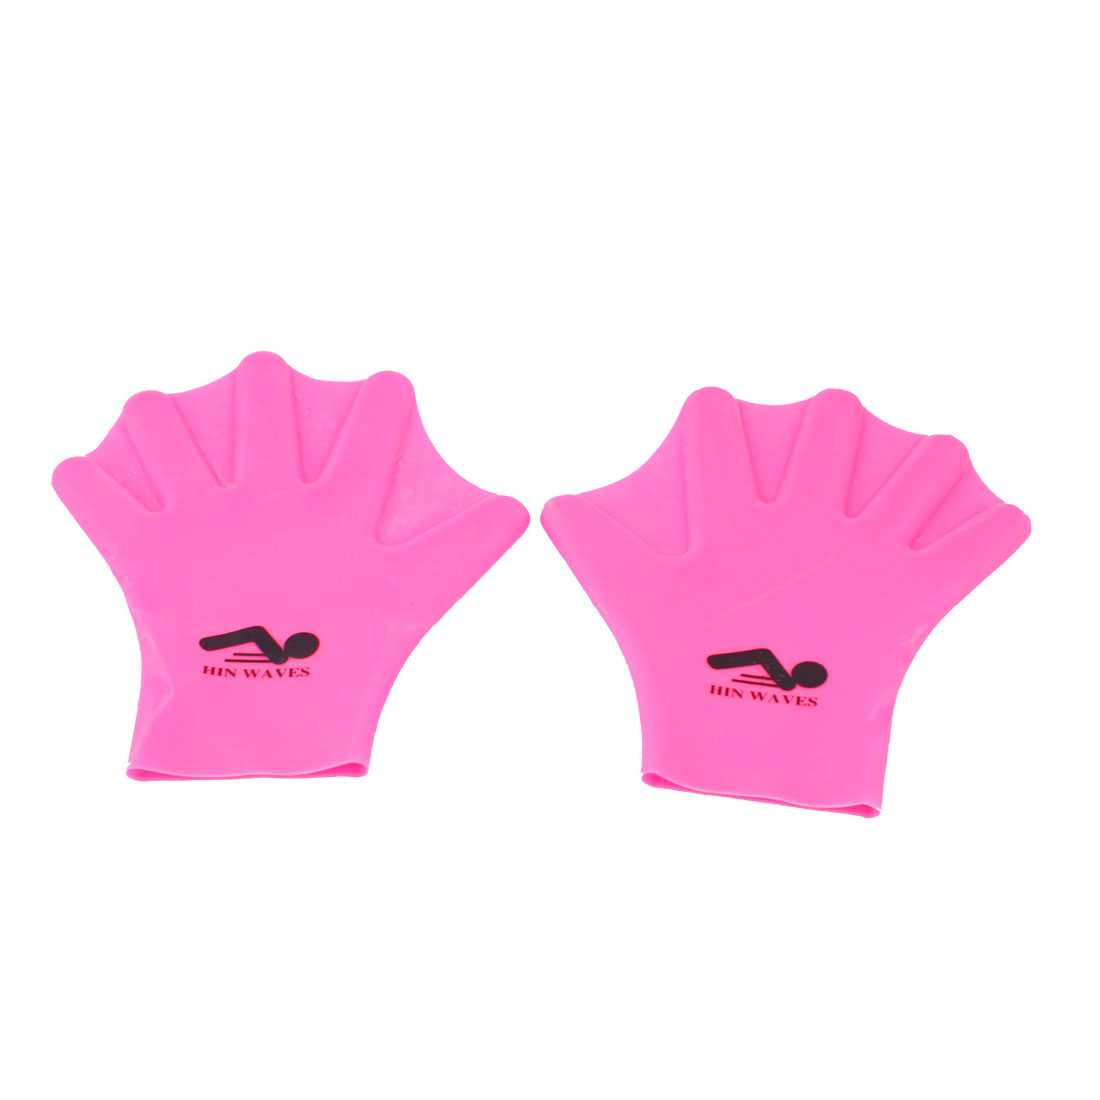 Pair Pink Soft Silicone Adults Swimming Diving Paddles Webbed Gloves